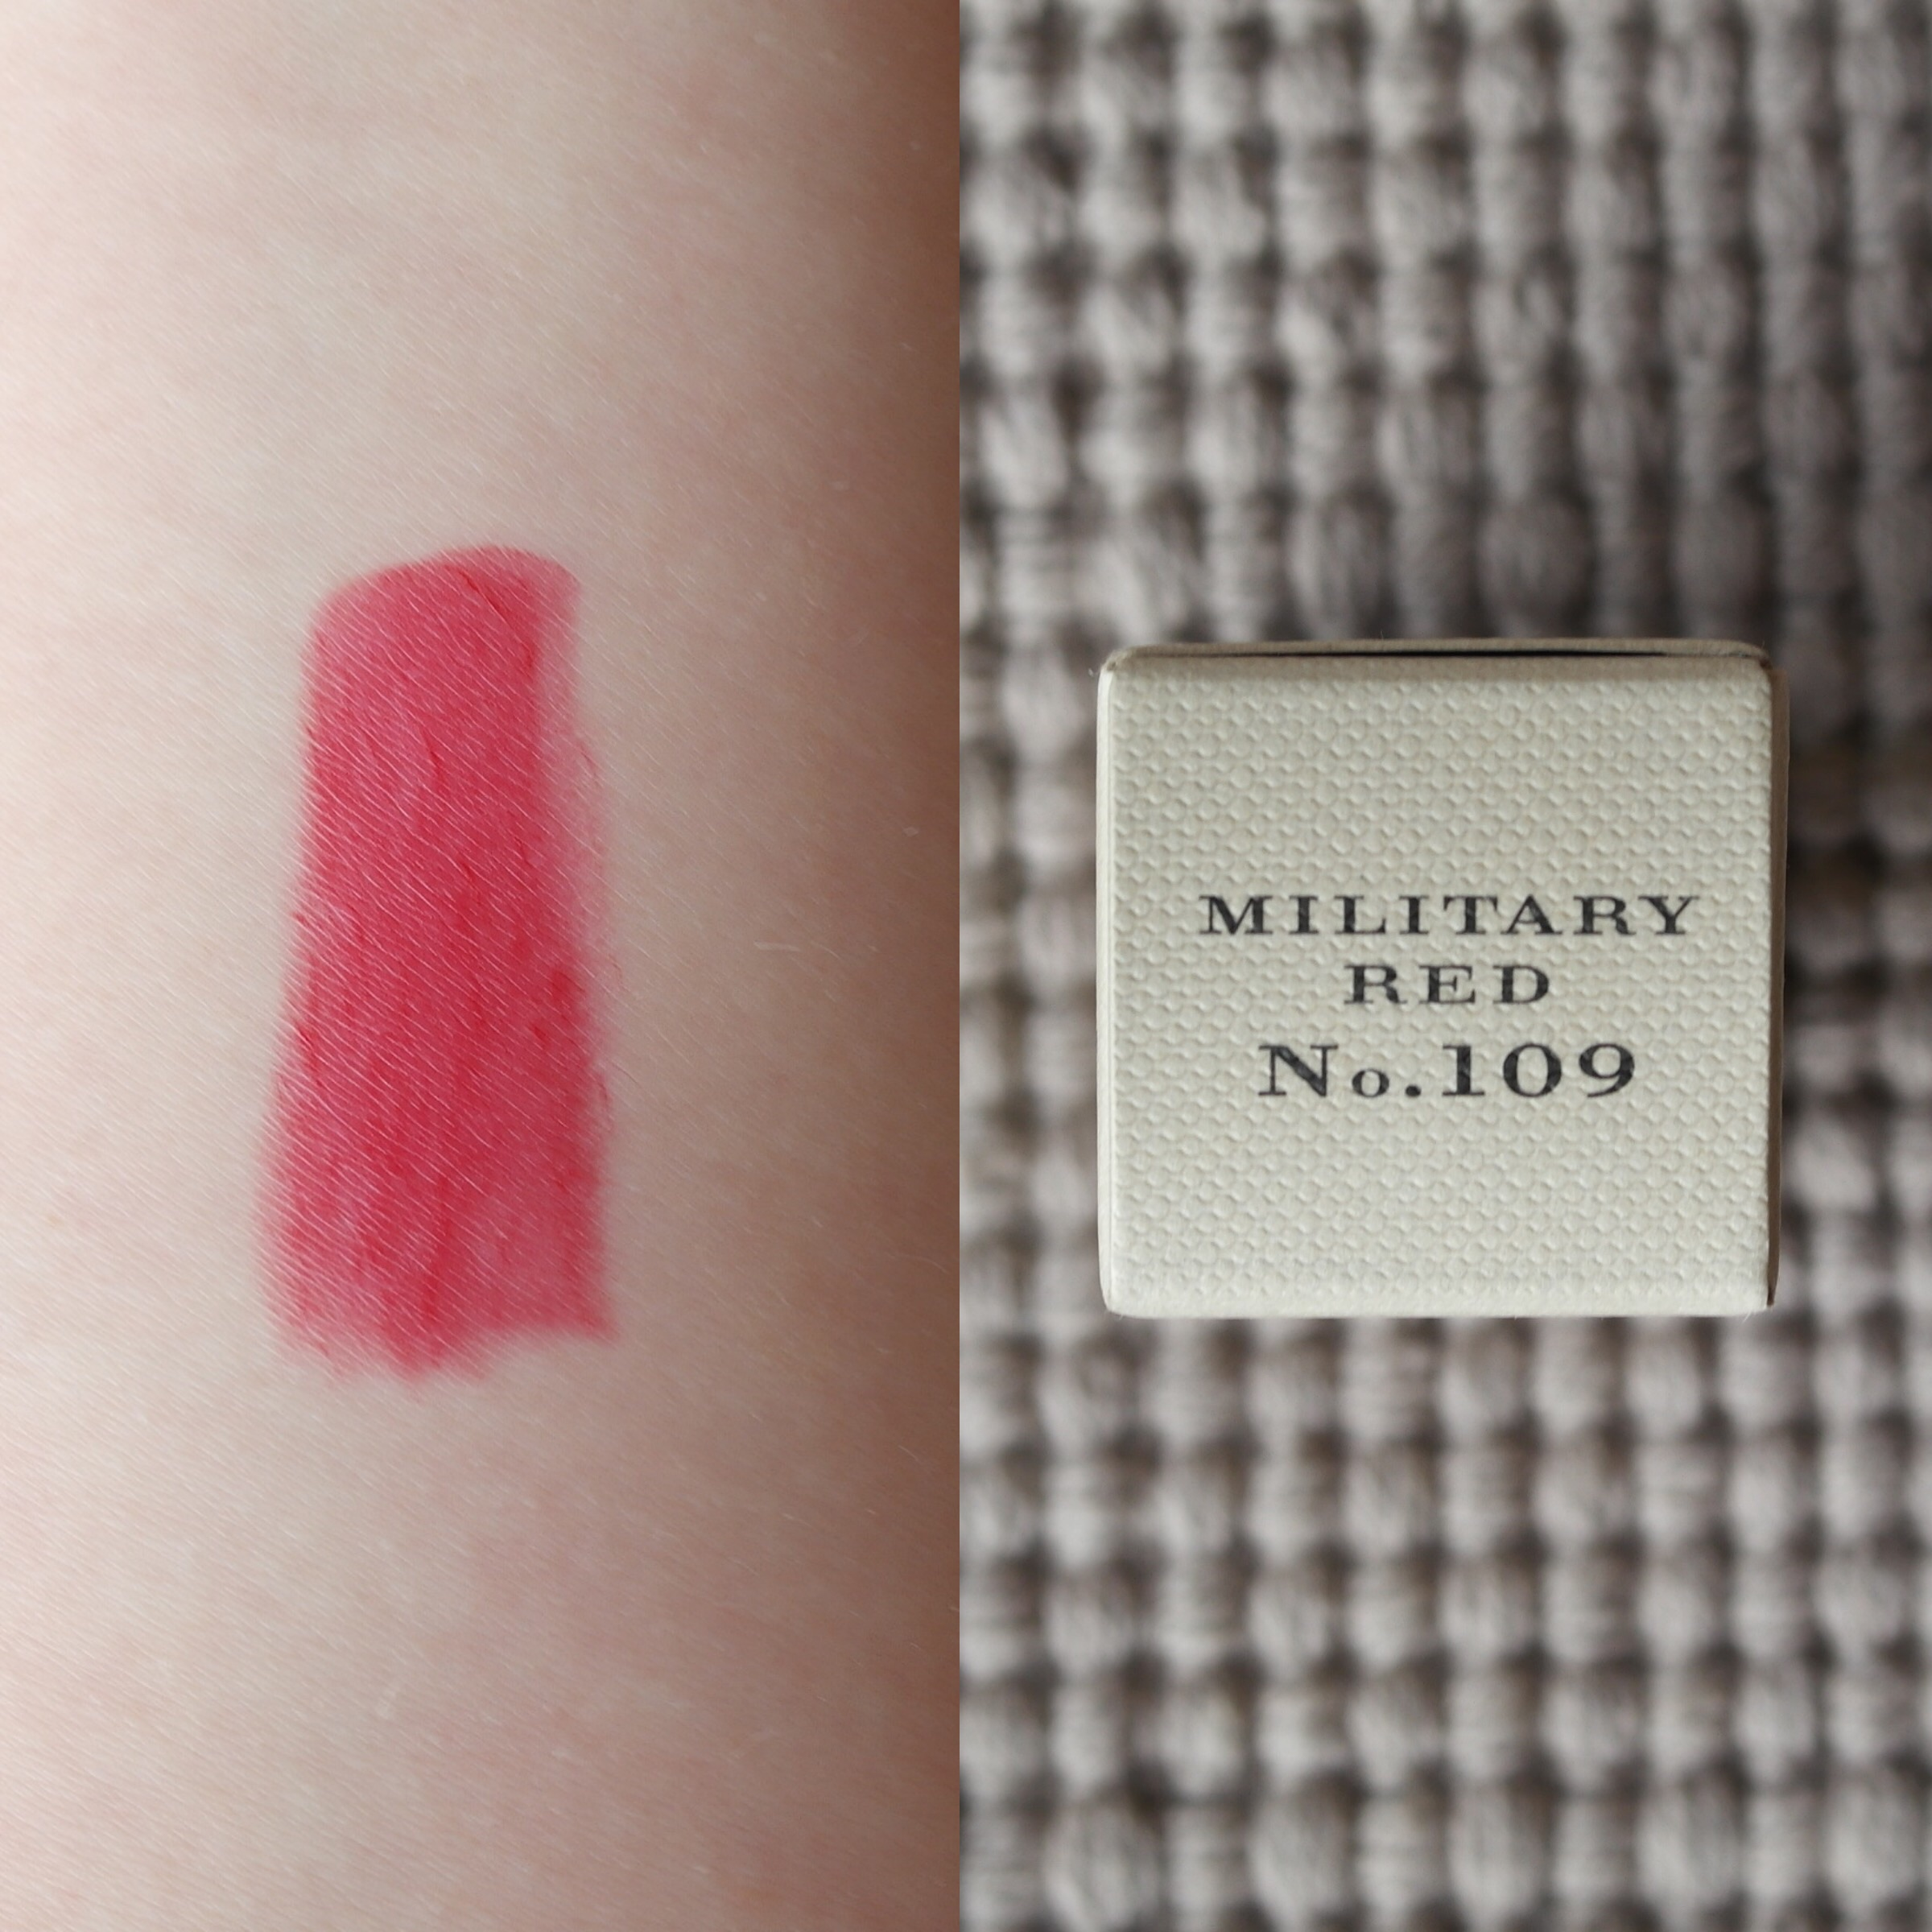 Burberry Kisses - Military Red